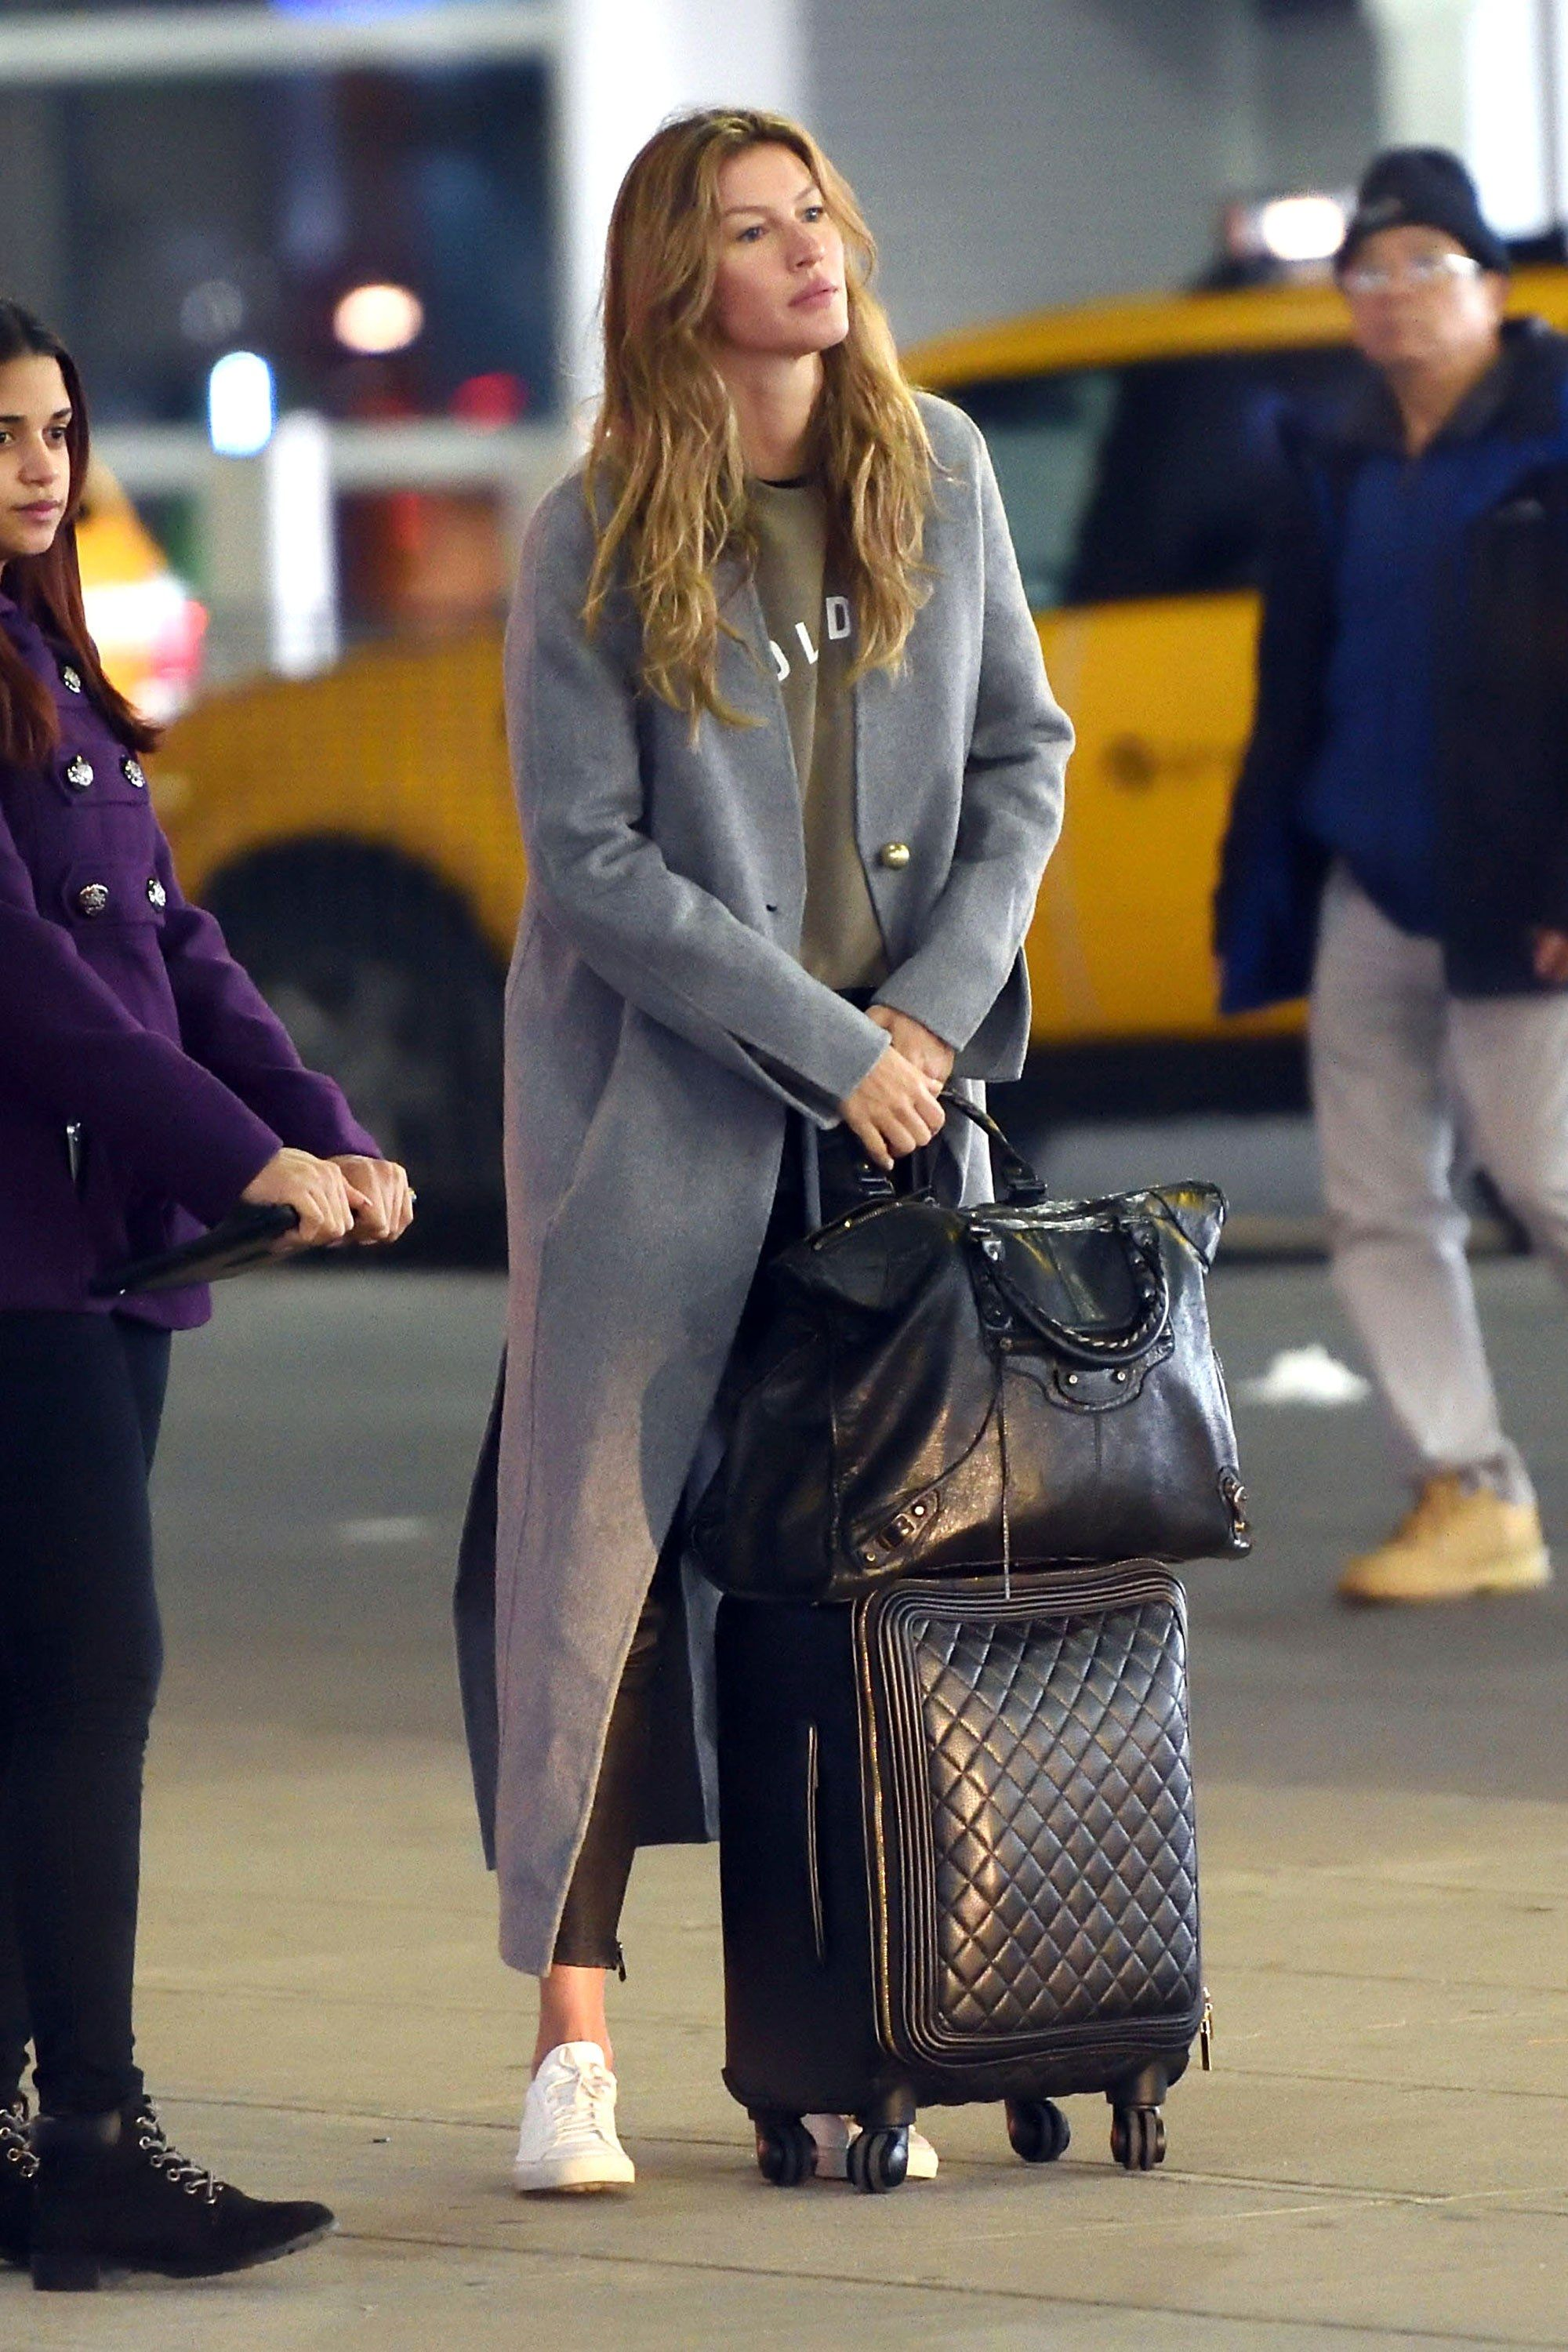 91f102120c Why Gisele Bündchen s Ordinary Airport Look Is Actually Extraordinary